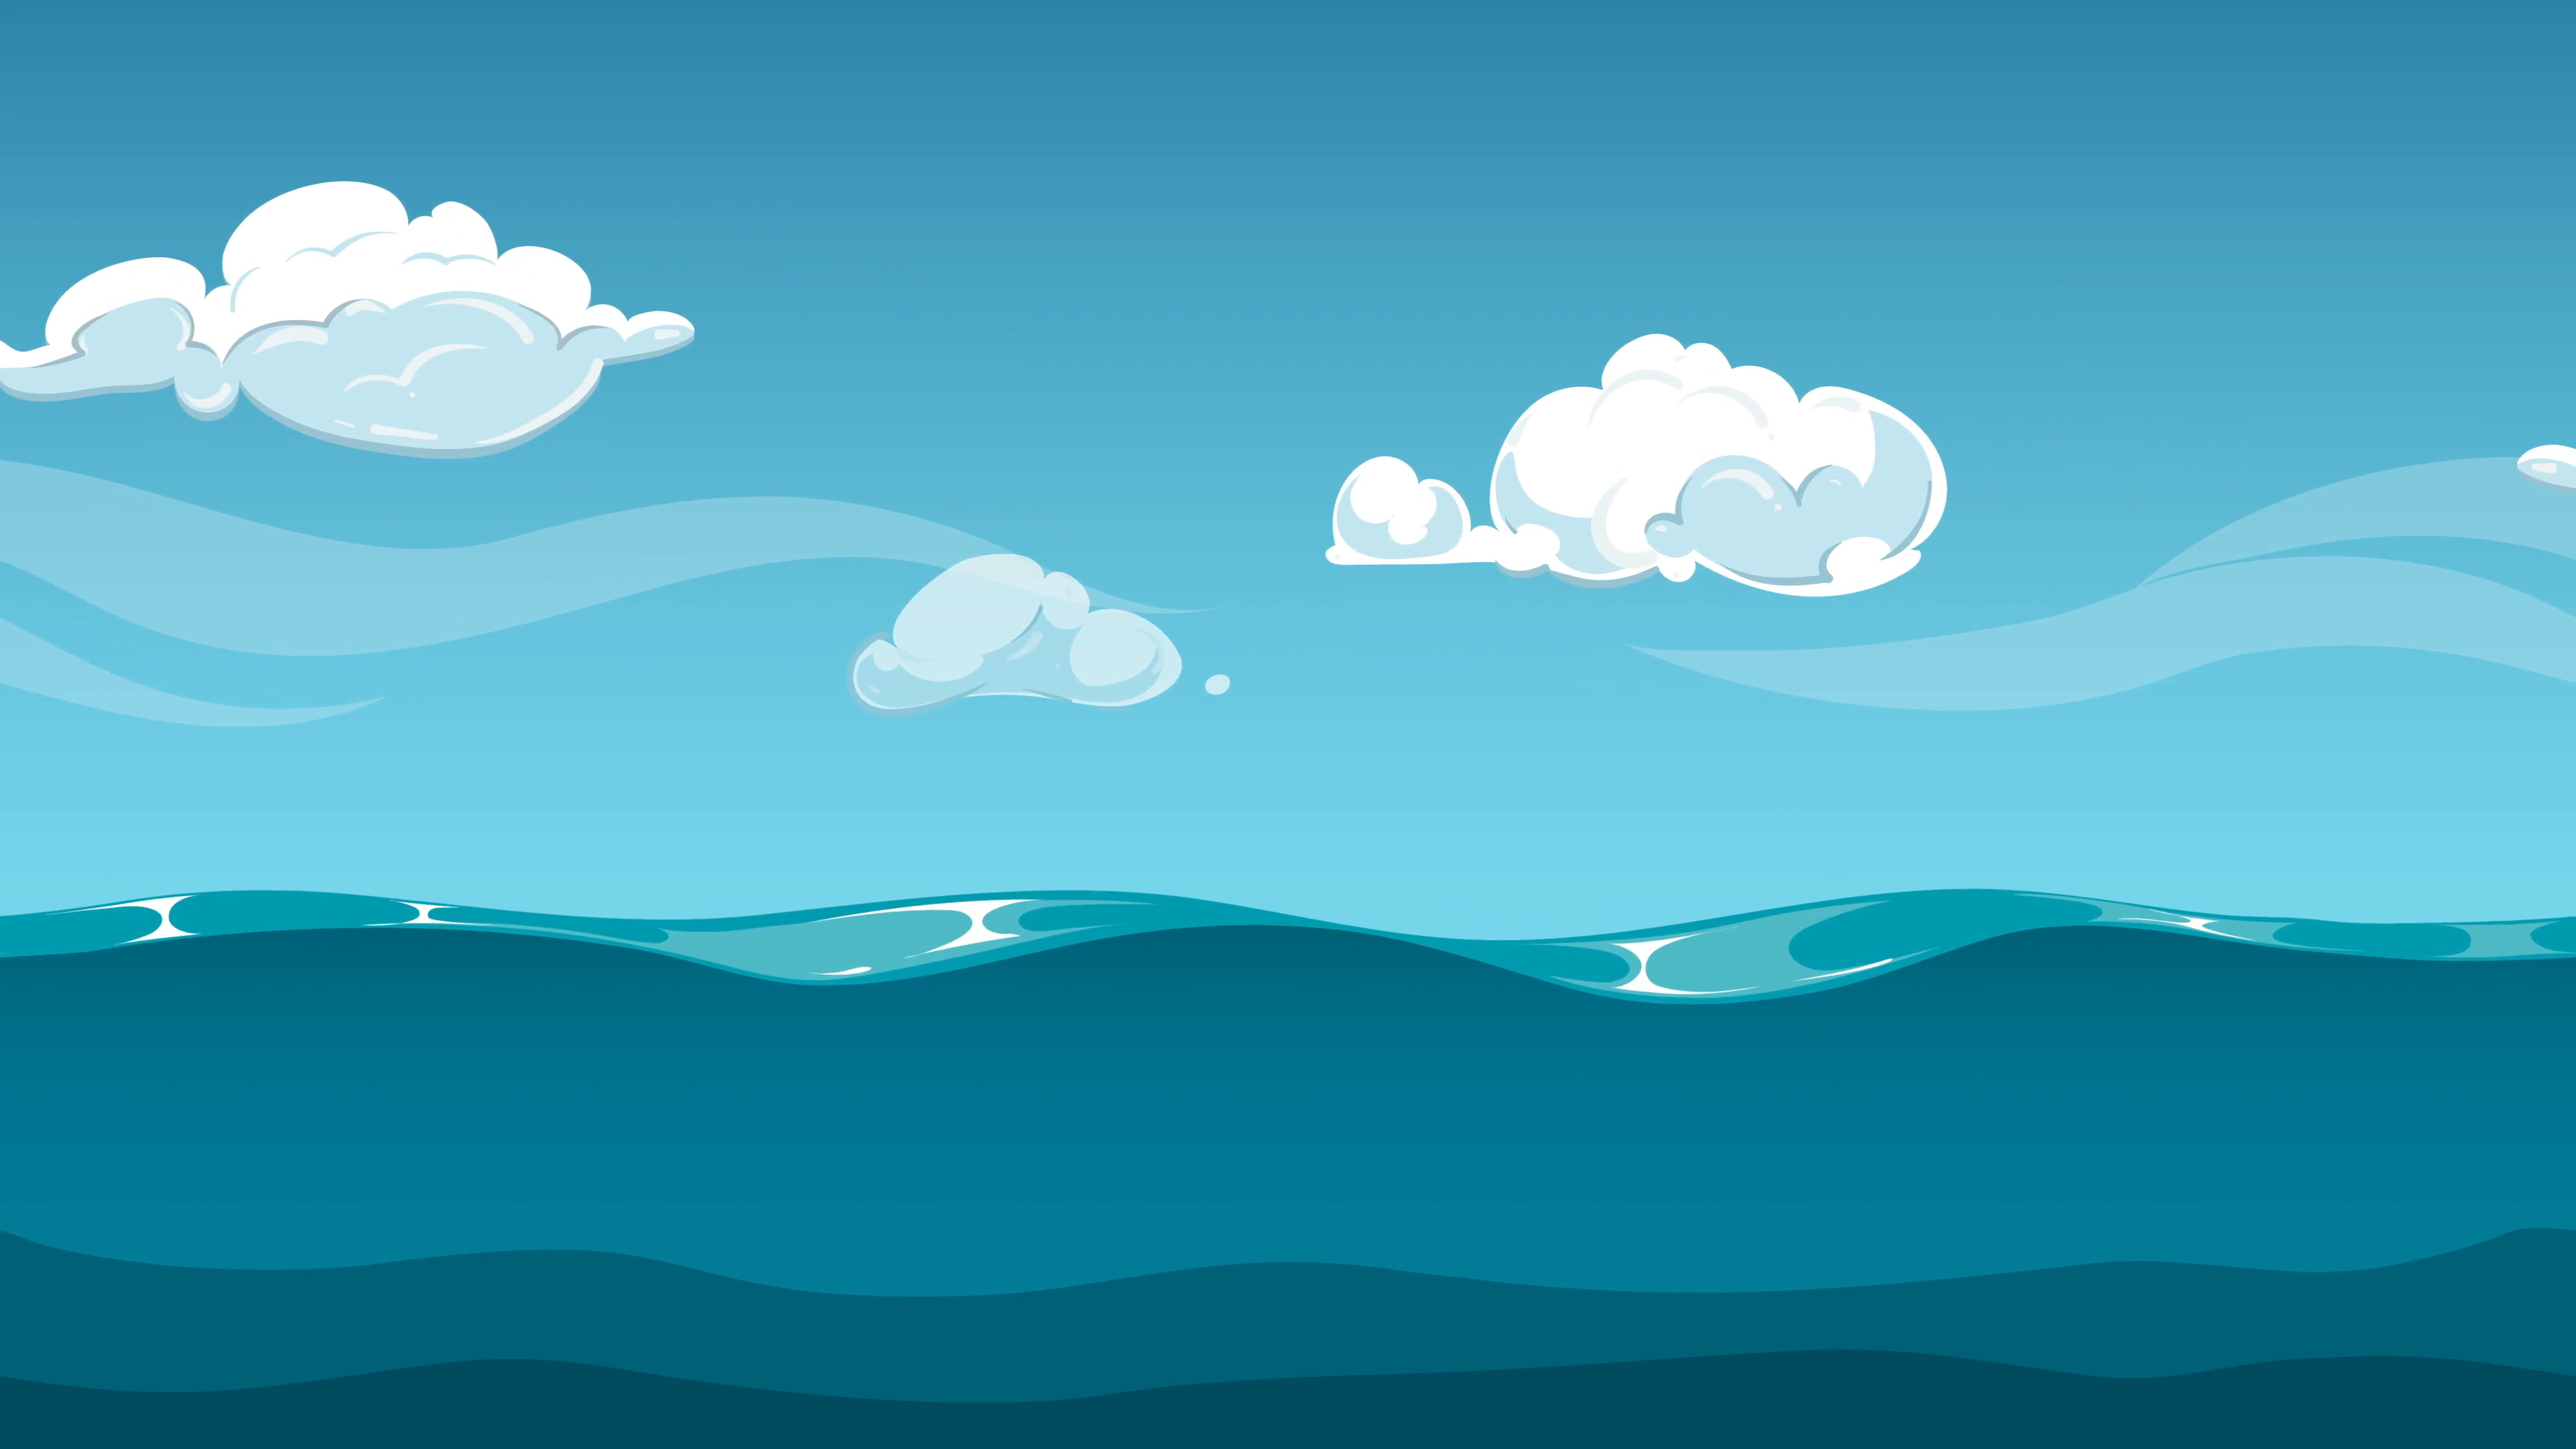 Water And Sky PNG - 169642